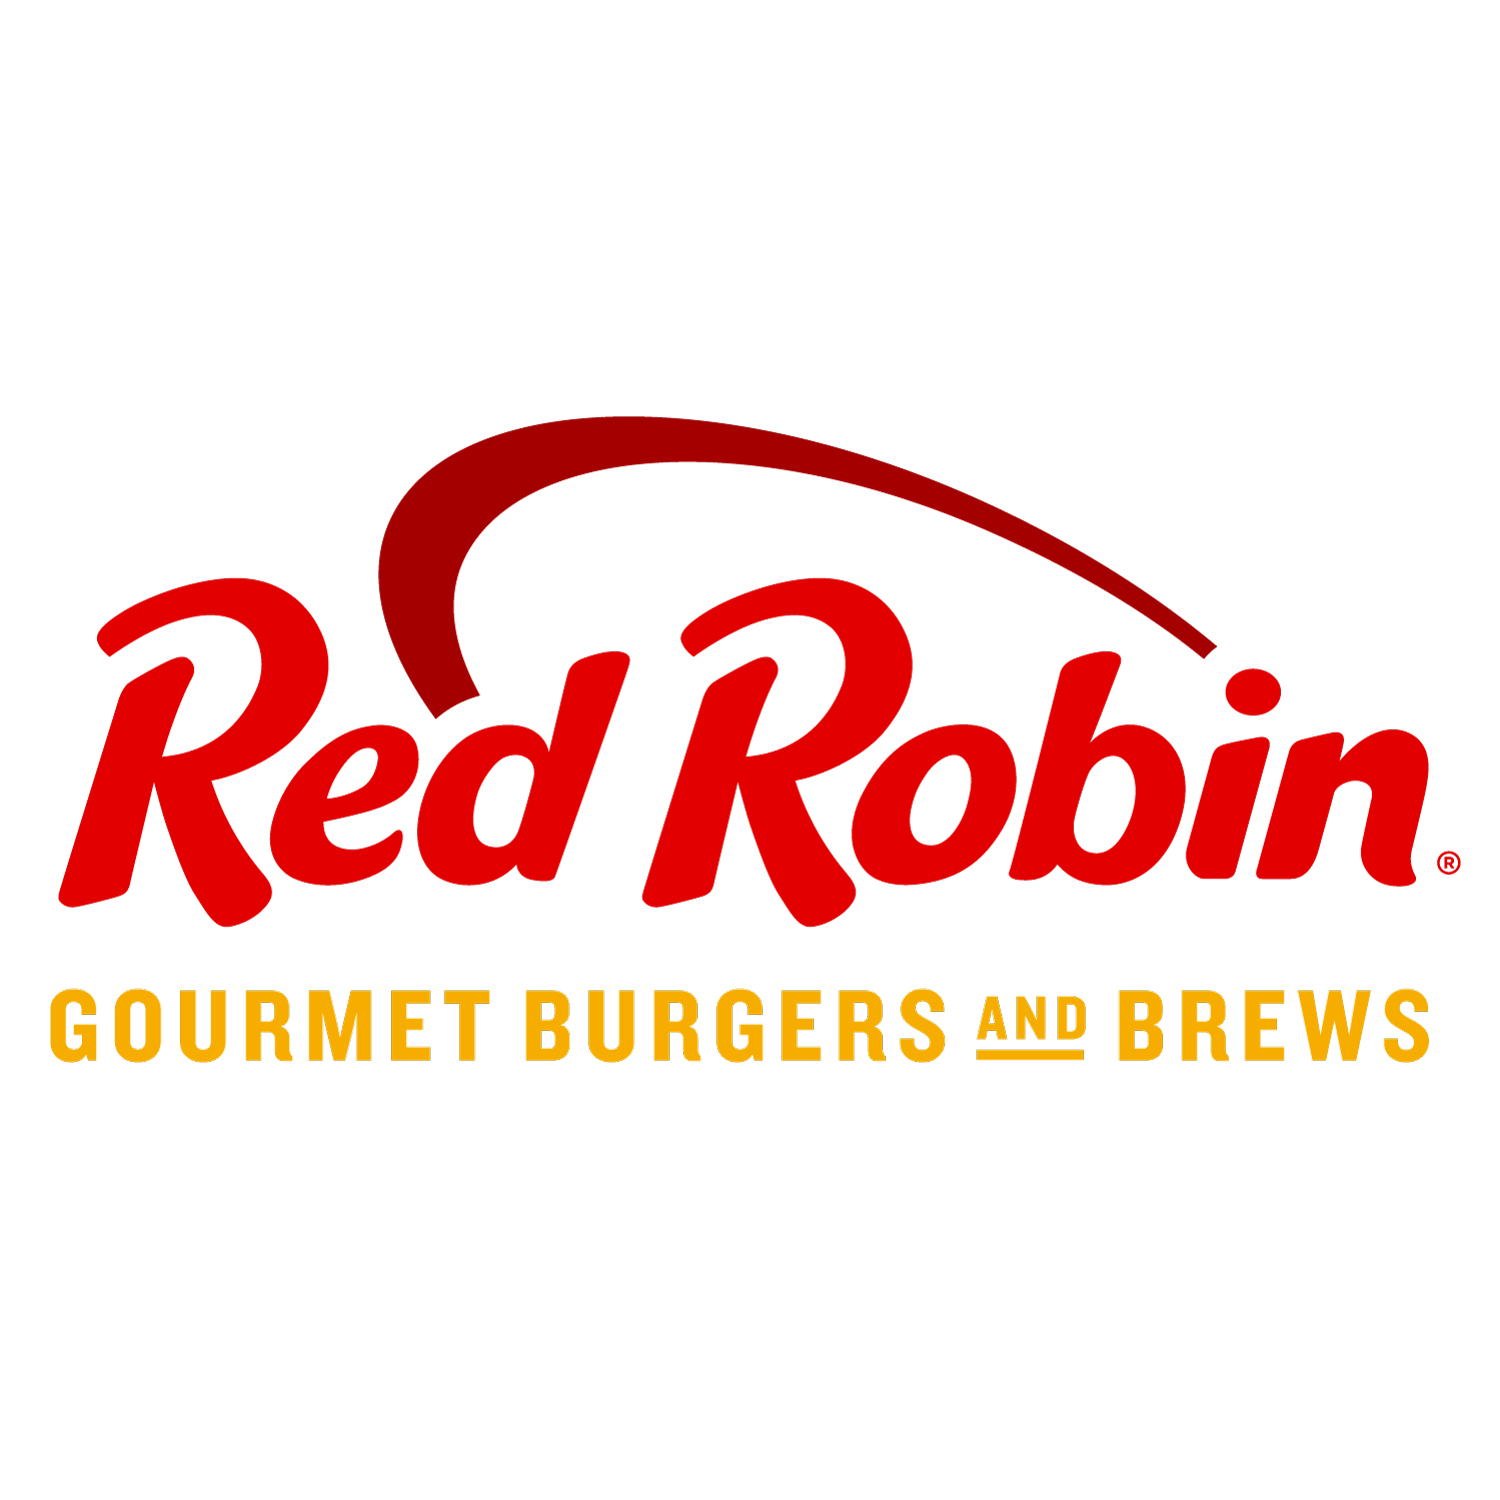 red robin logo 2018